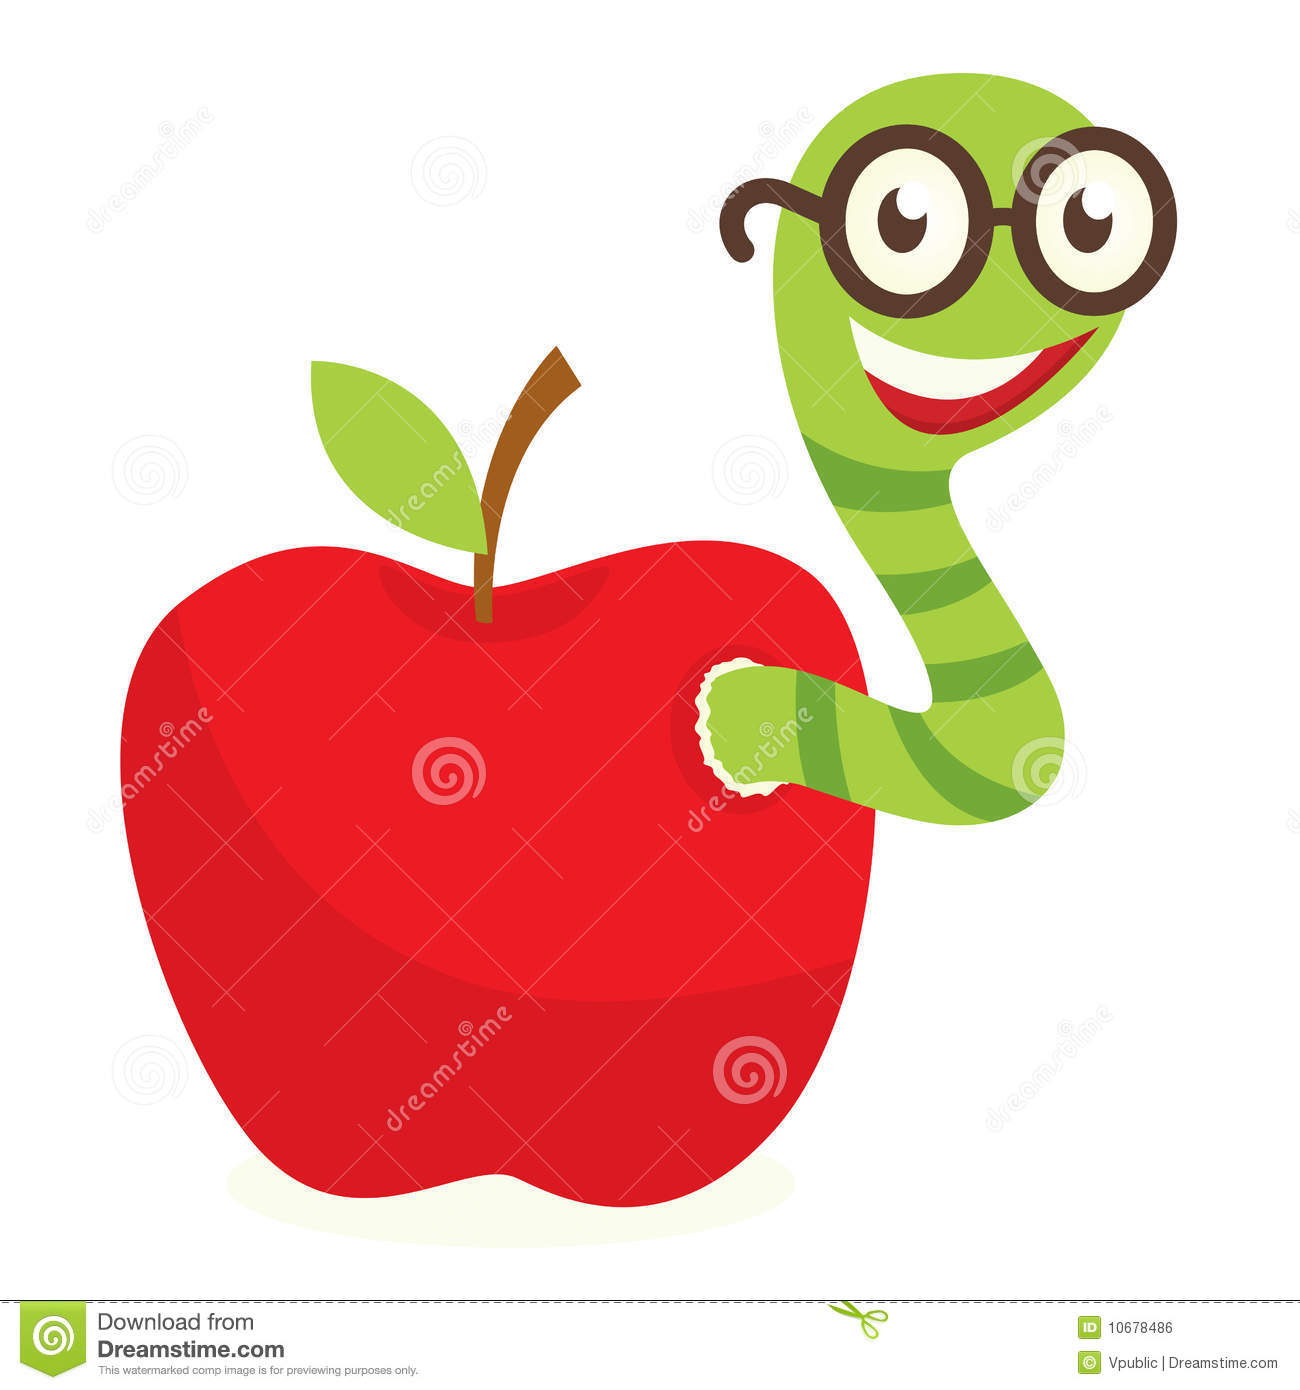 how to draw a worm in an apple